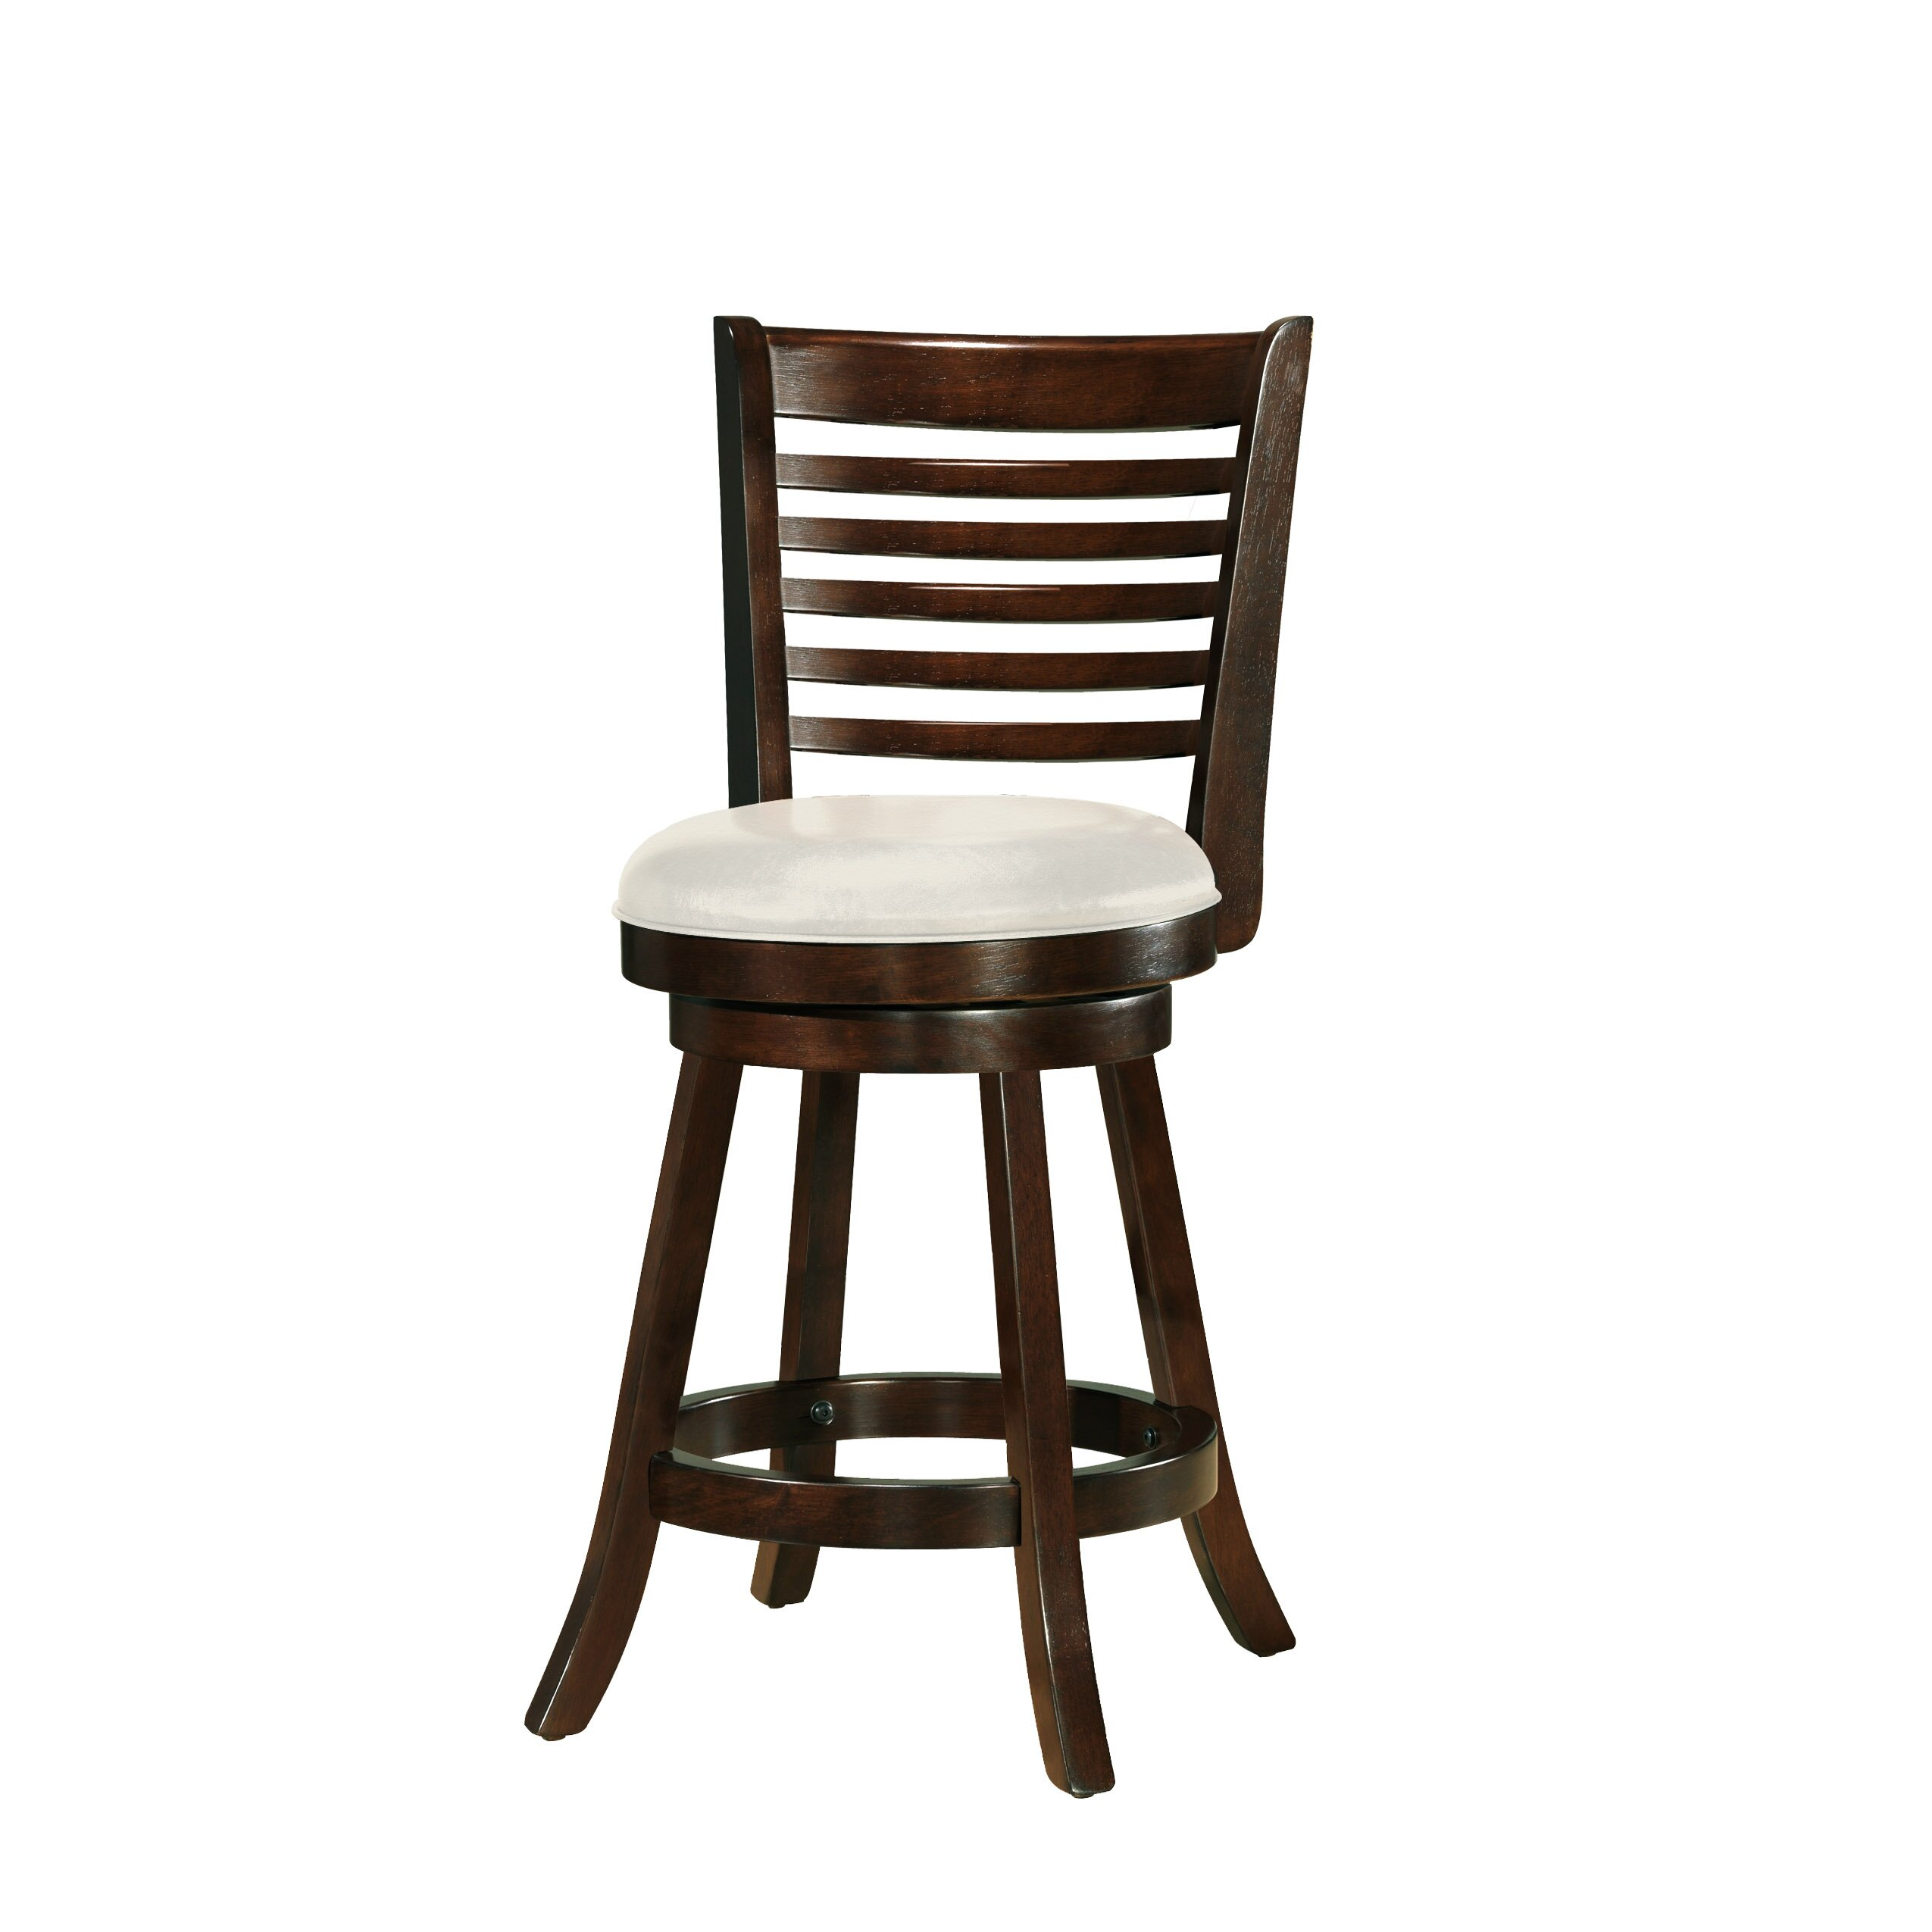 CorLiving Woodgrove 24quot Swivel Bar Stool amp Reviews Wayfair : CorLiving Woodgrove 24 Wood Swivel Bar Stool with Cushion DWG 914 B from www.wayfair.com size 2550 x 2550 jpeg 309kB